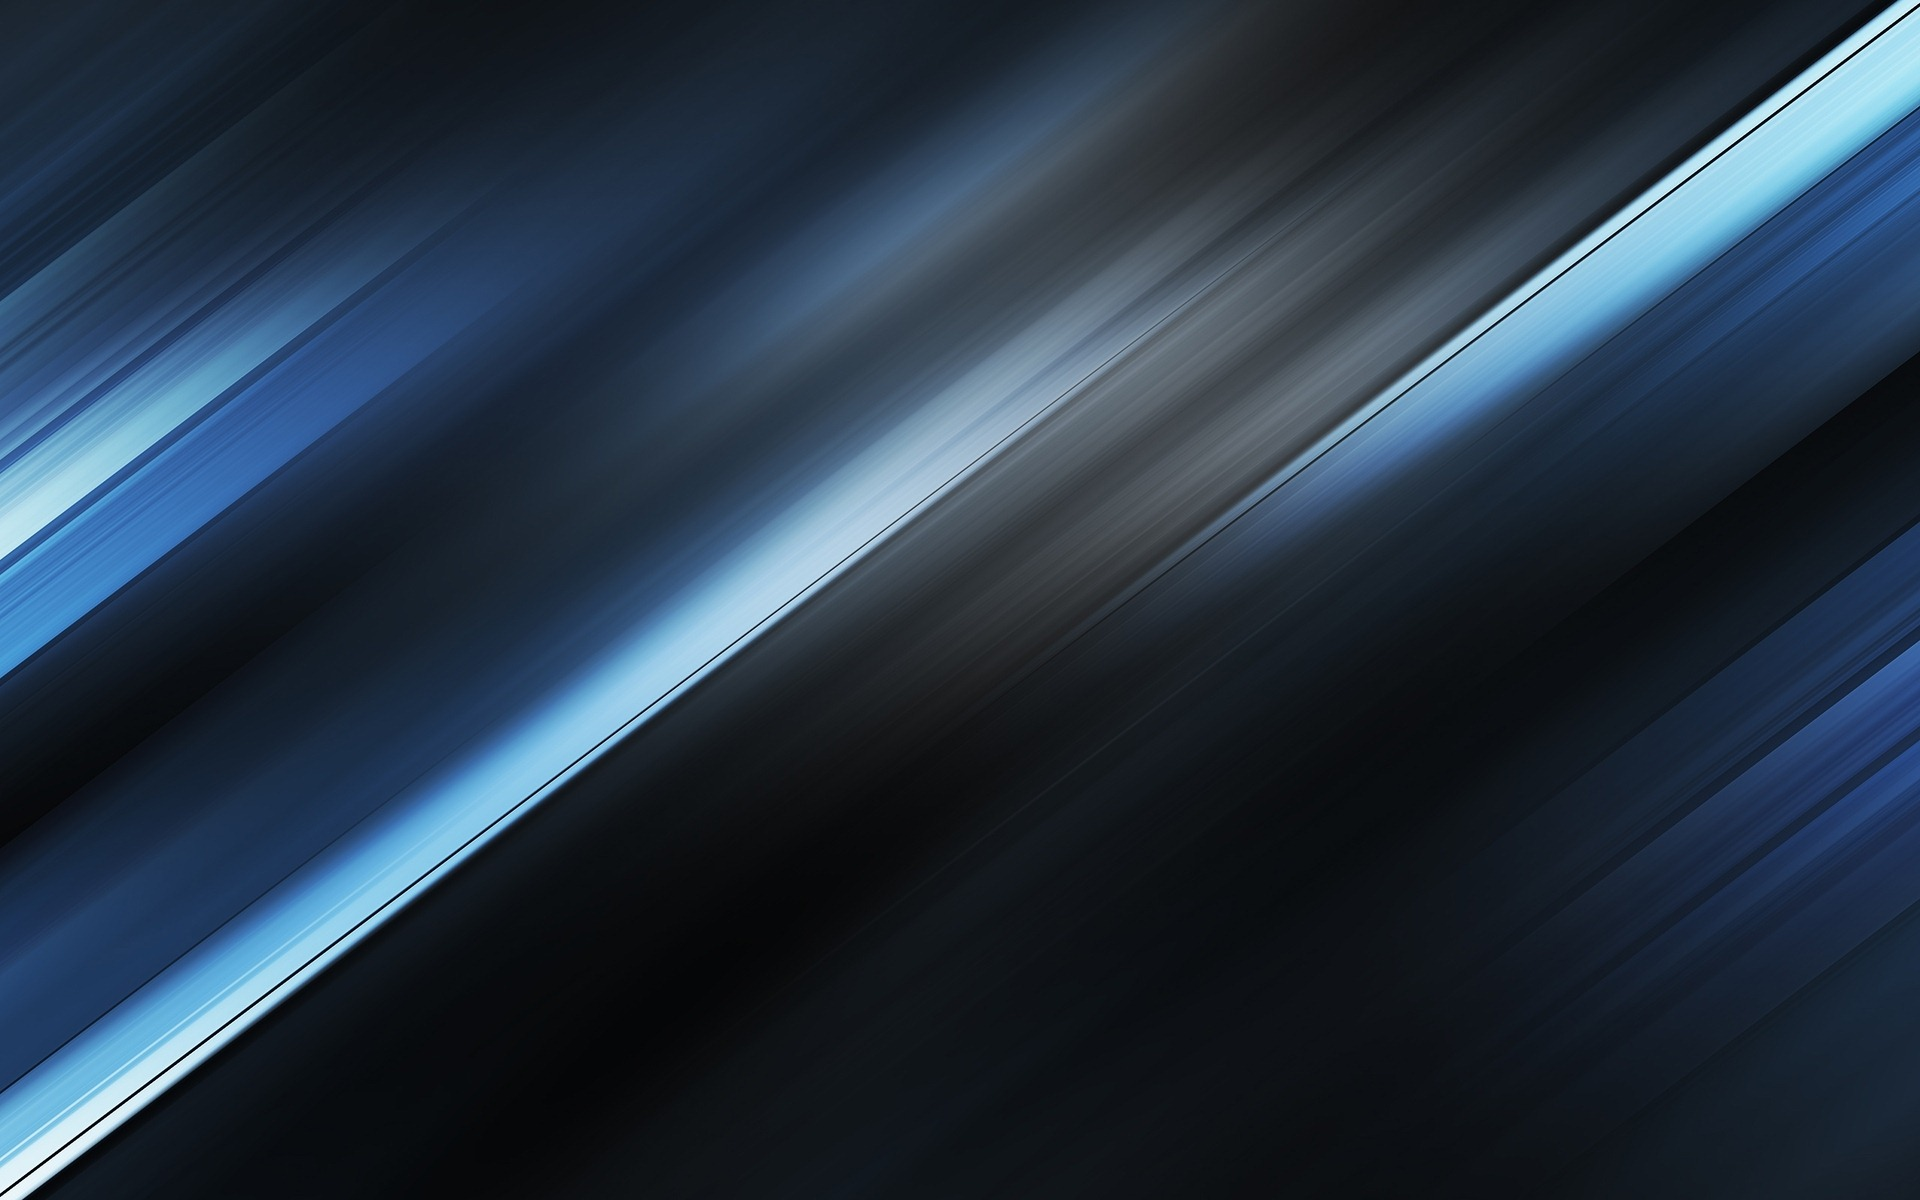 47 abstract desktop background Pictures